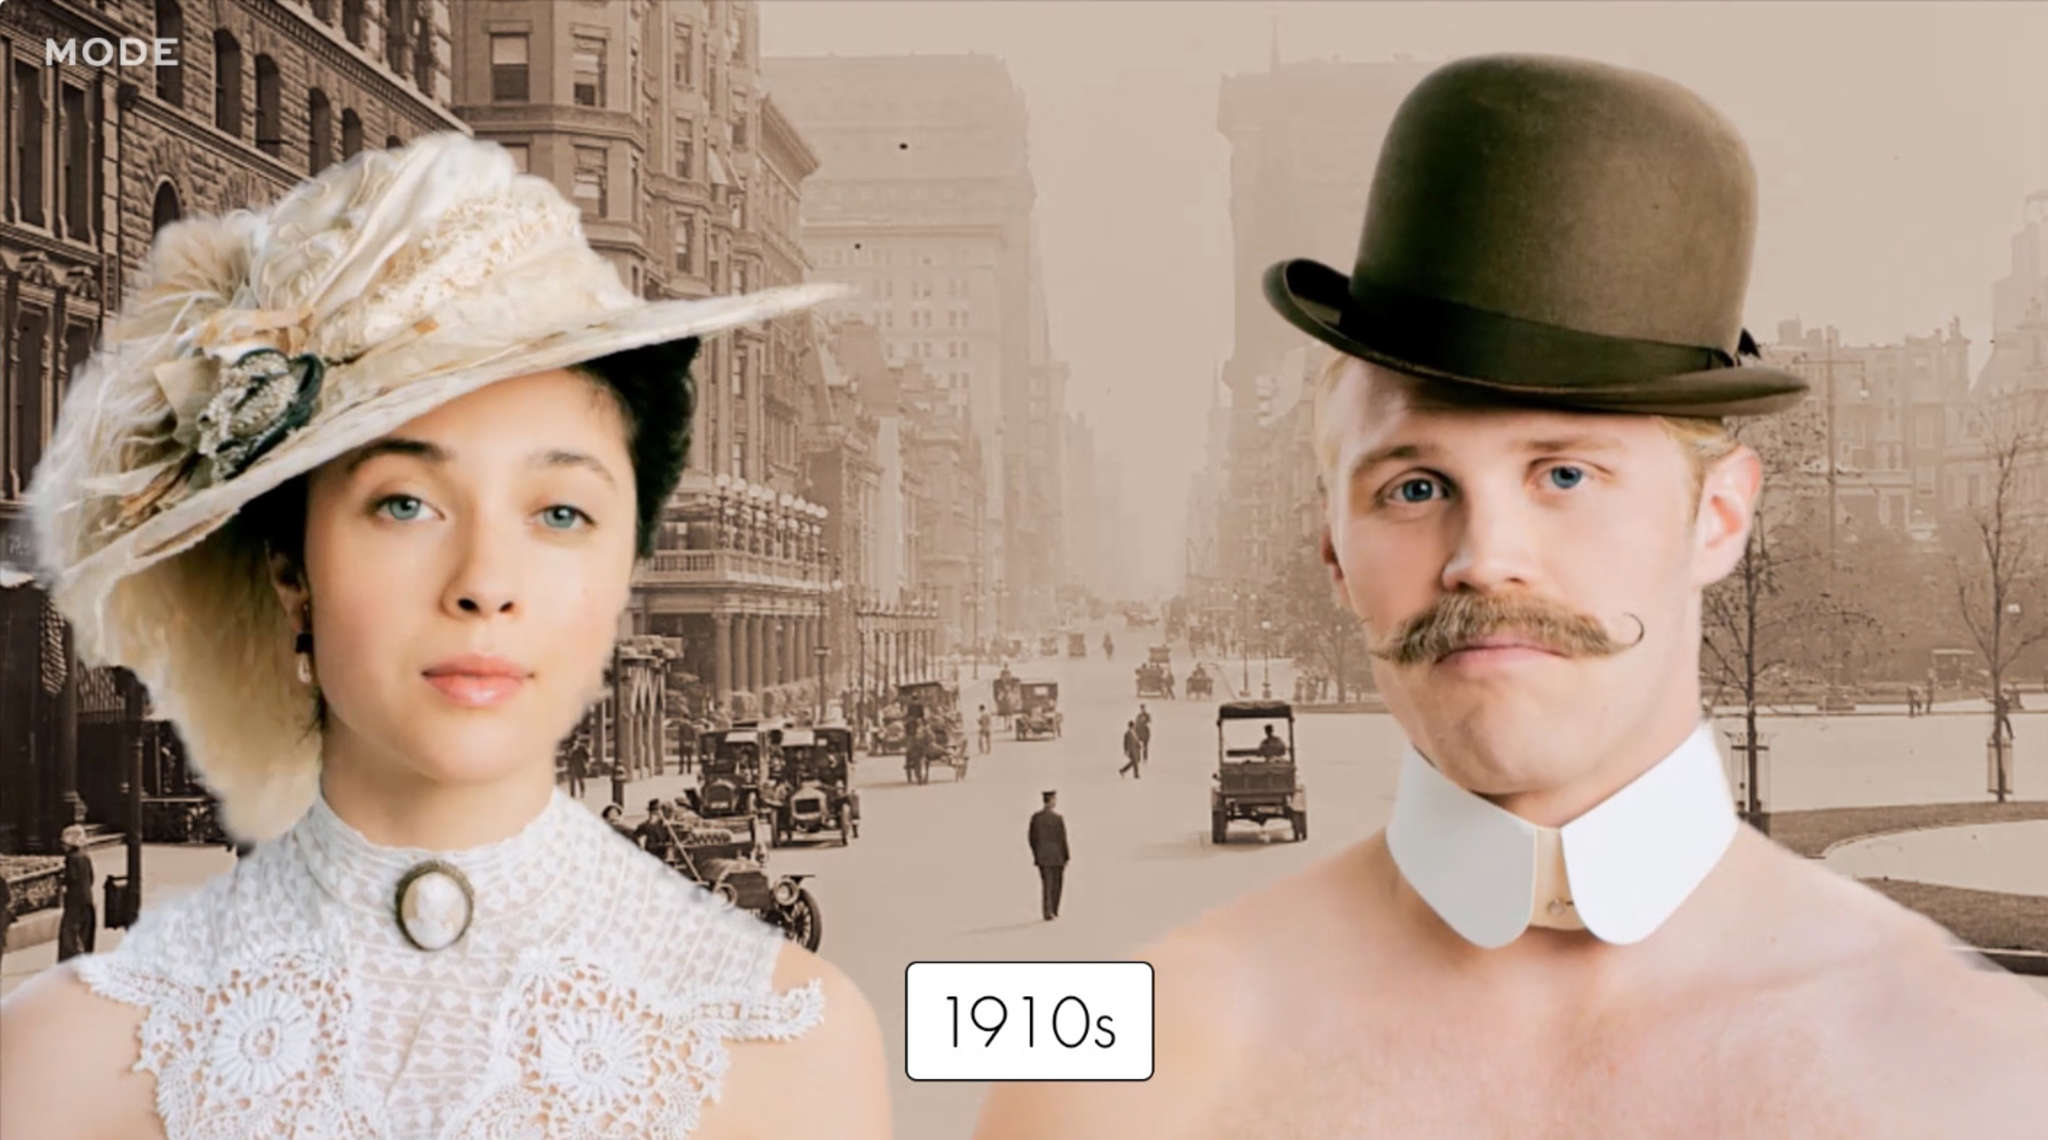 """The short video """"100 Years of Fashion: Hats"""" shows trends from 10 decades. Mode Studios has created 18 videos, on such topics as cars, nails, cocktails, wedding dresses."""